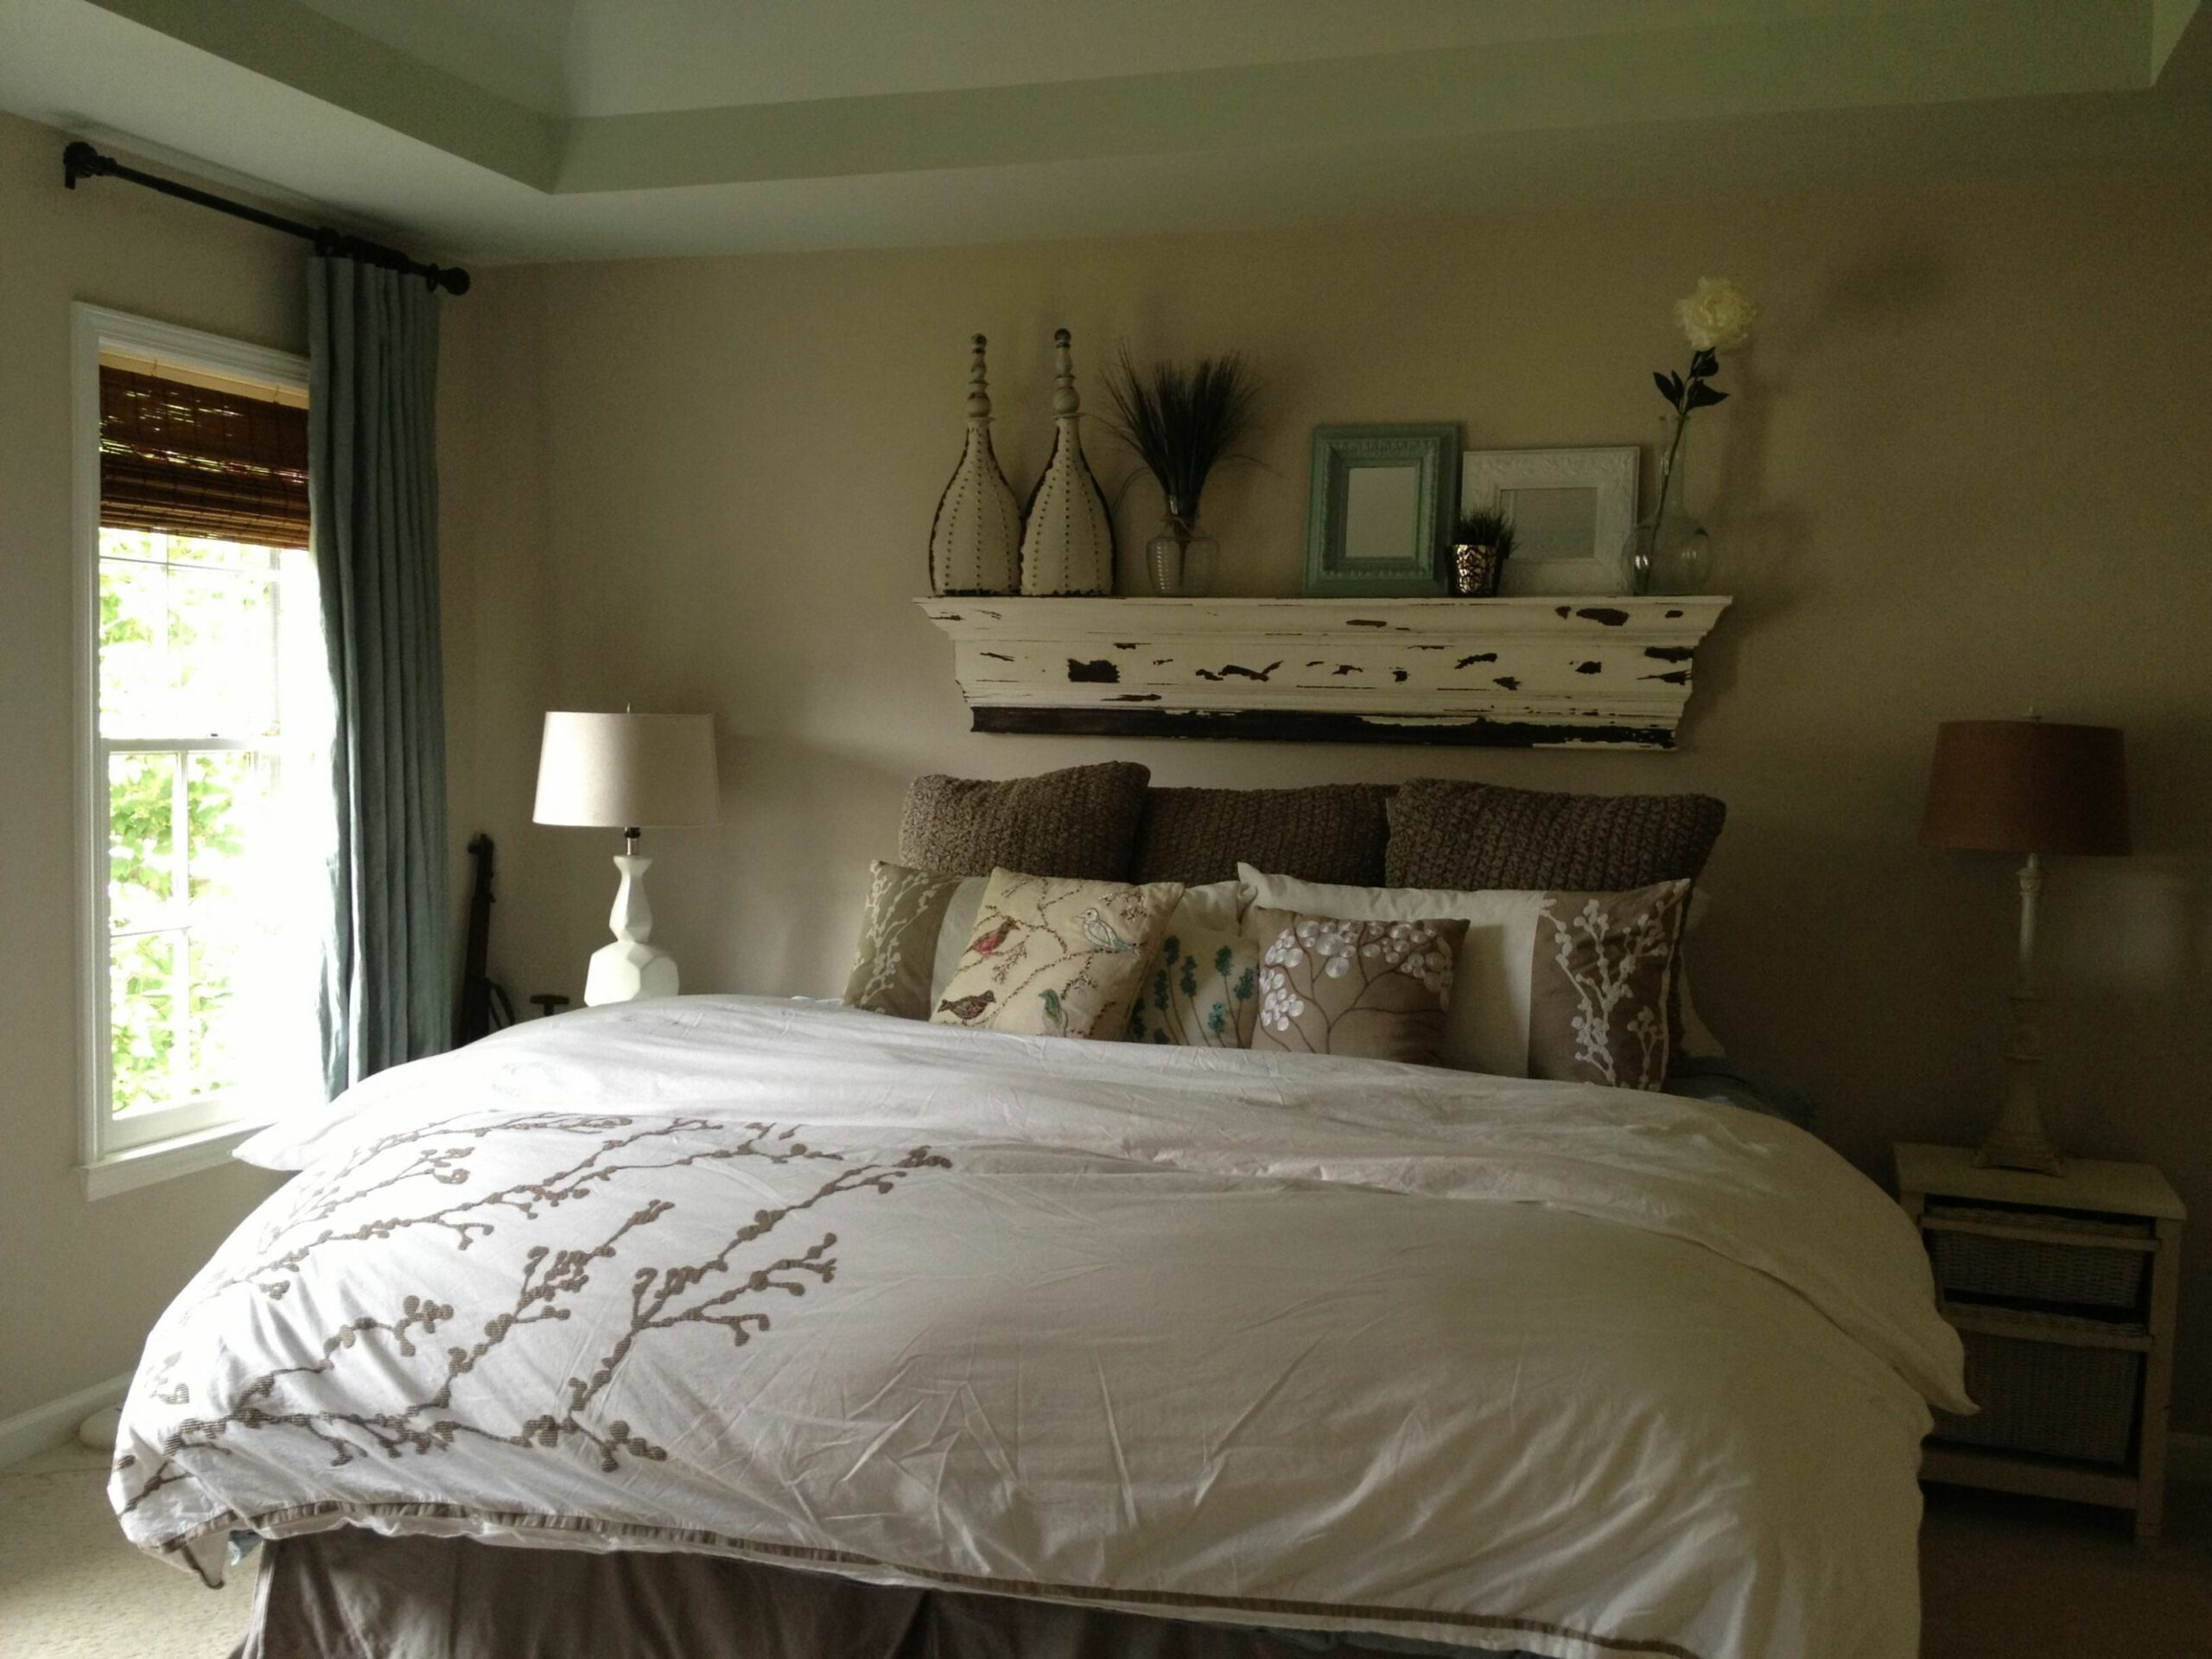 Master bedroom | Bed without headboard, Home decor bedroom, Small ..